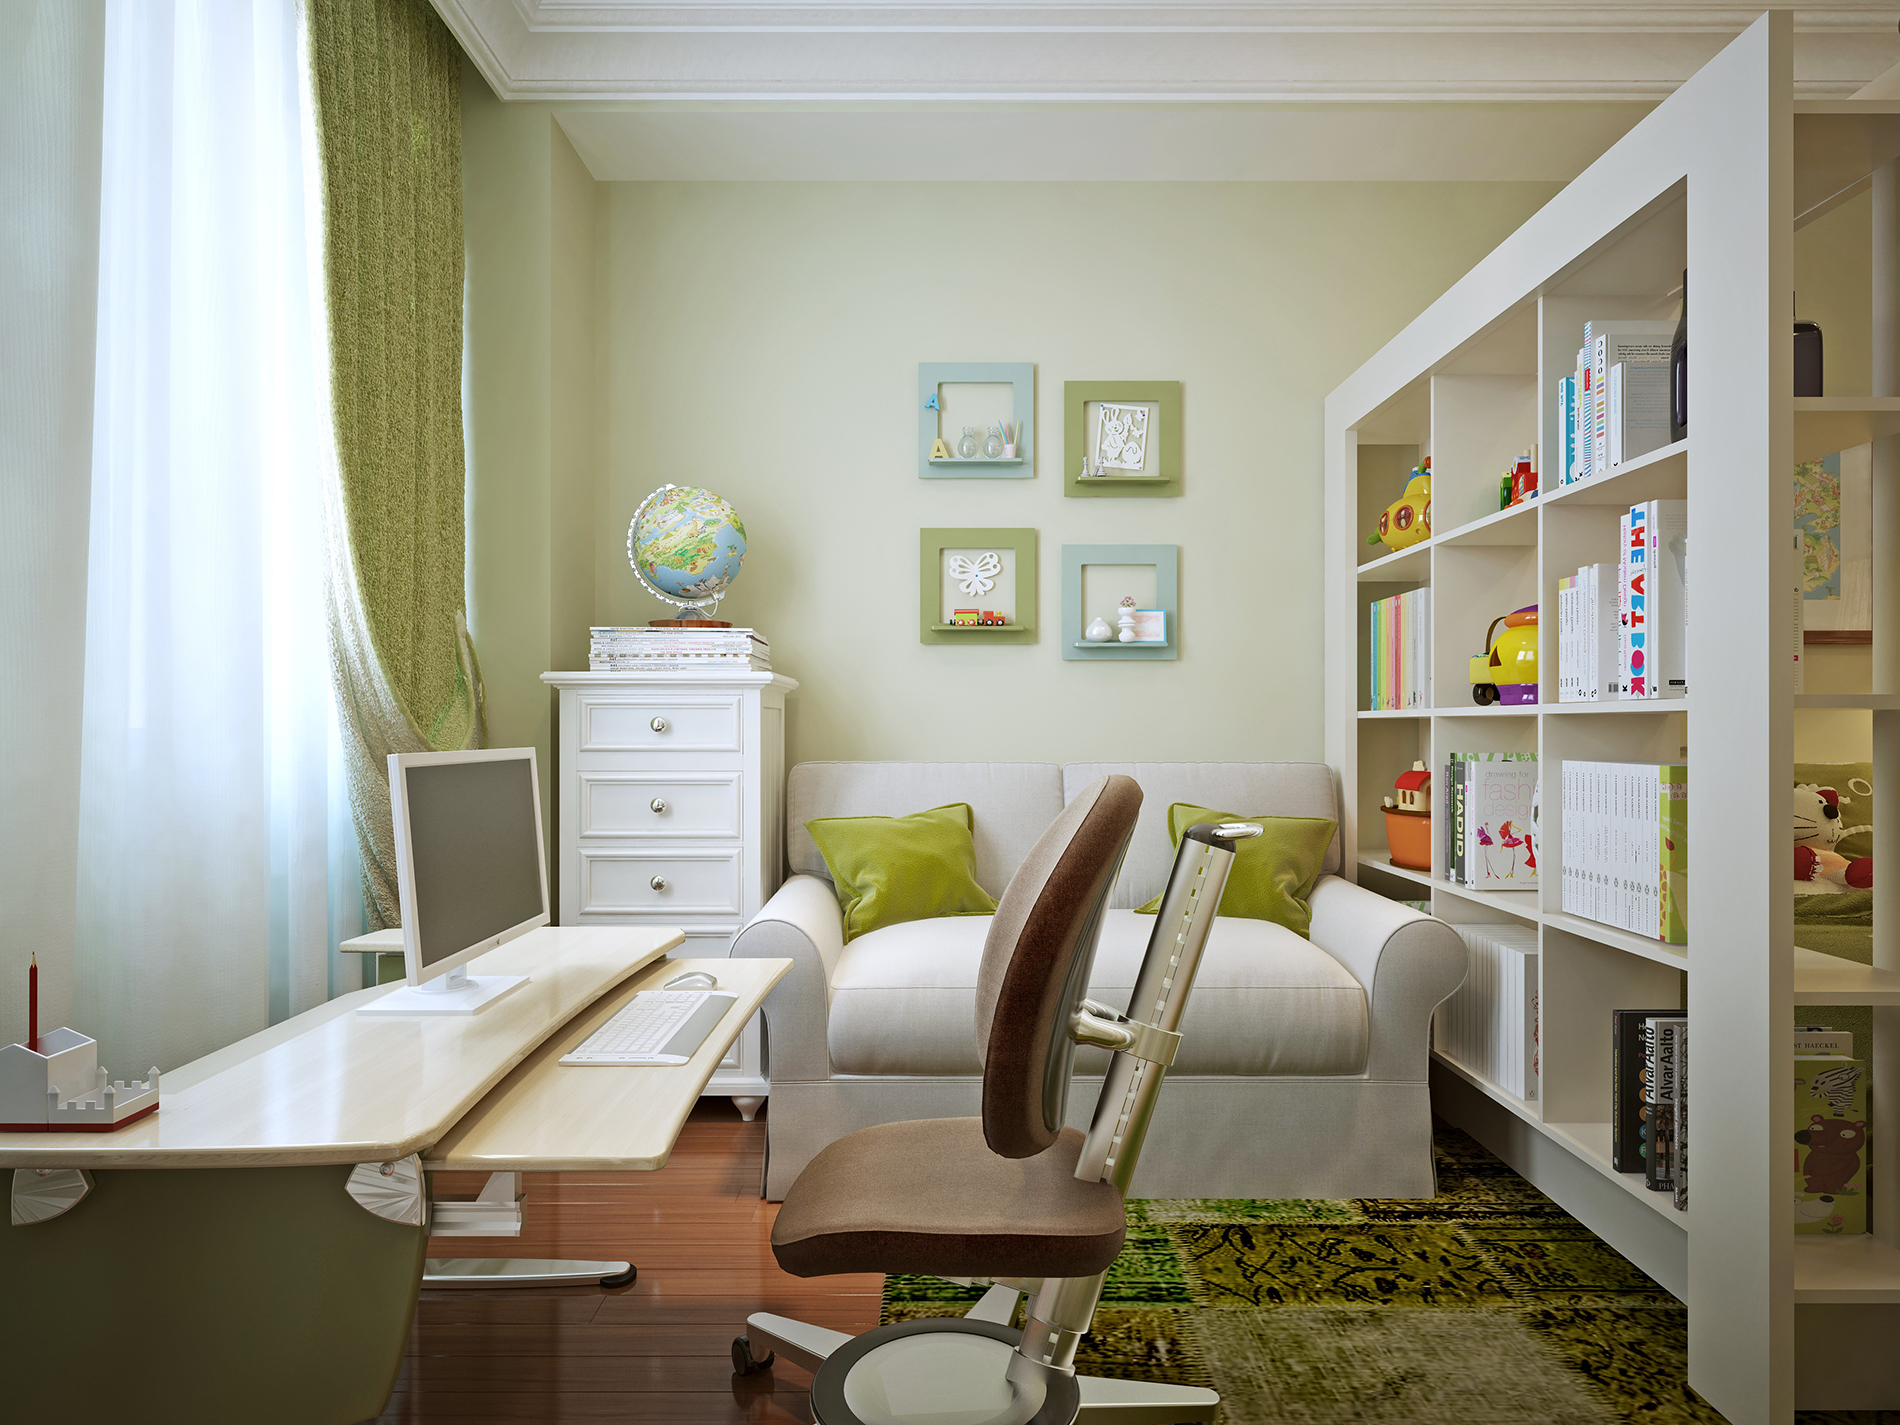 home impeccable show tremendous bookshelf interior feat inspiring also desk cabinet your ikea collection fascinating choose decorating nice gorgeous wooden design computer white workspace from